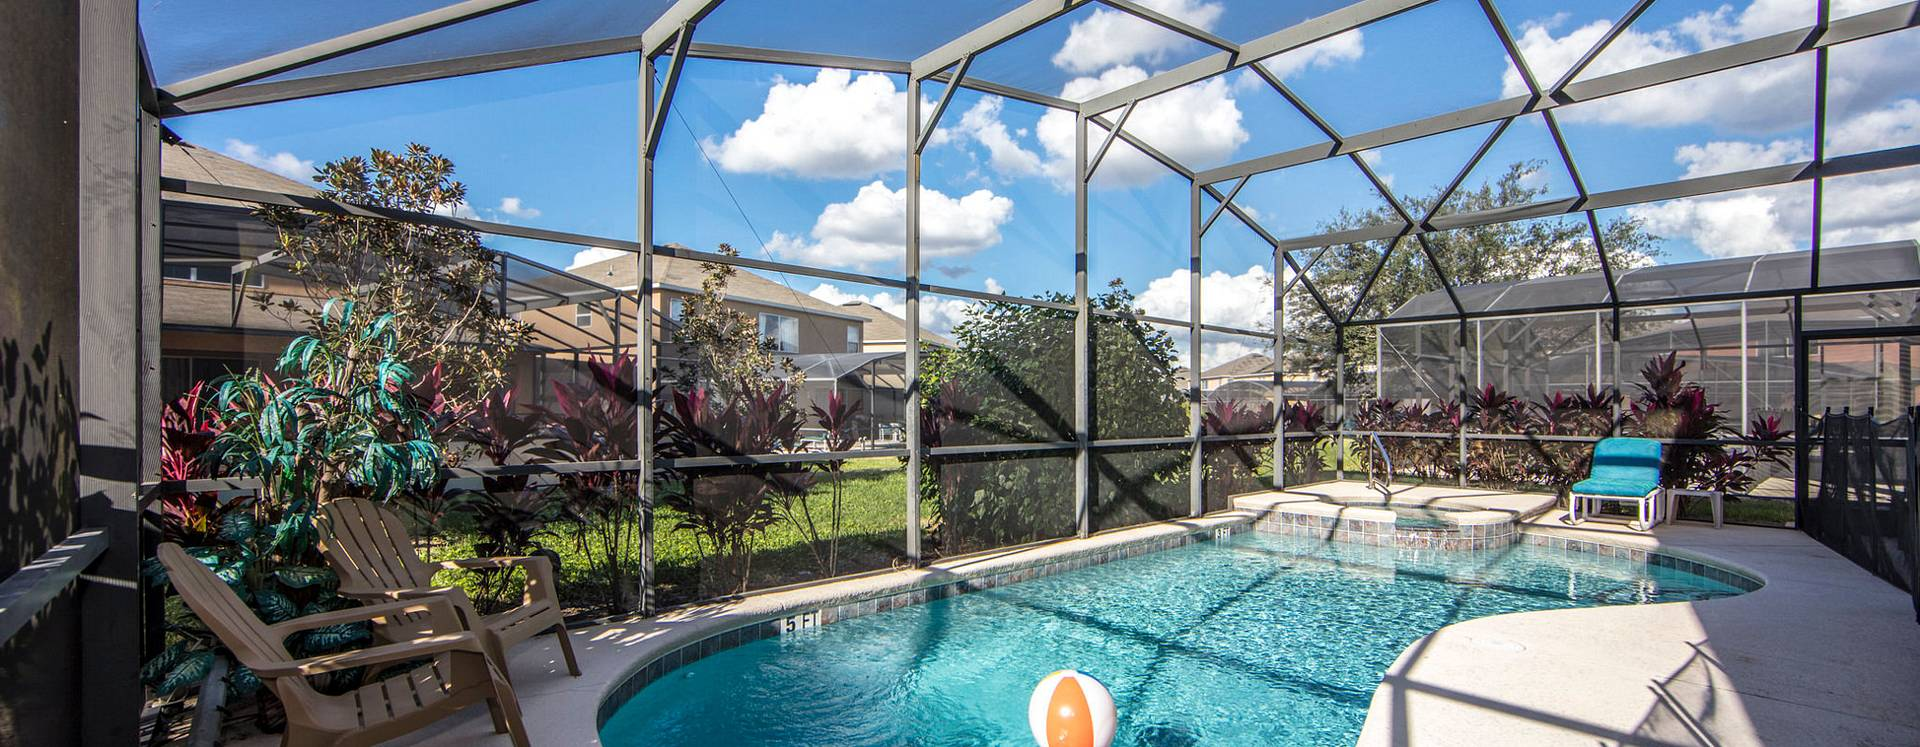 Orlando Vacation Homes 360 screened in pool